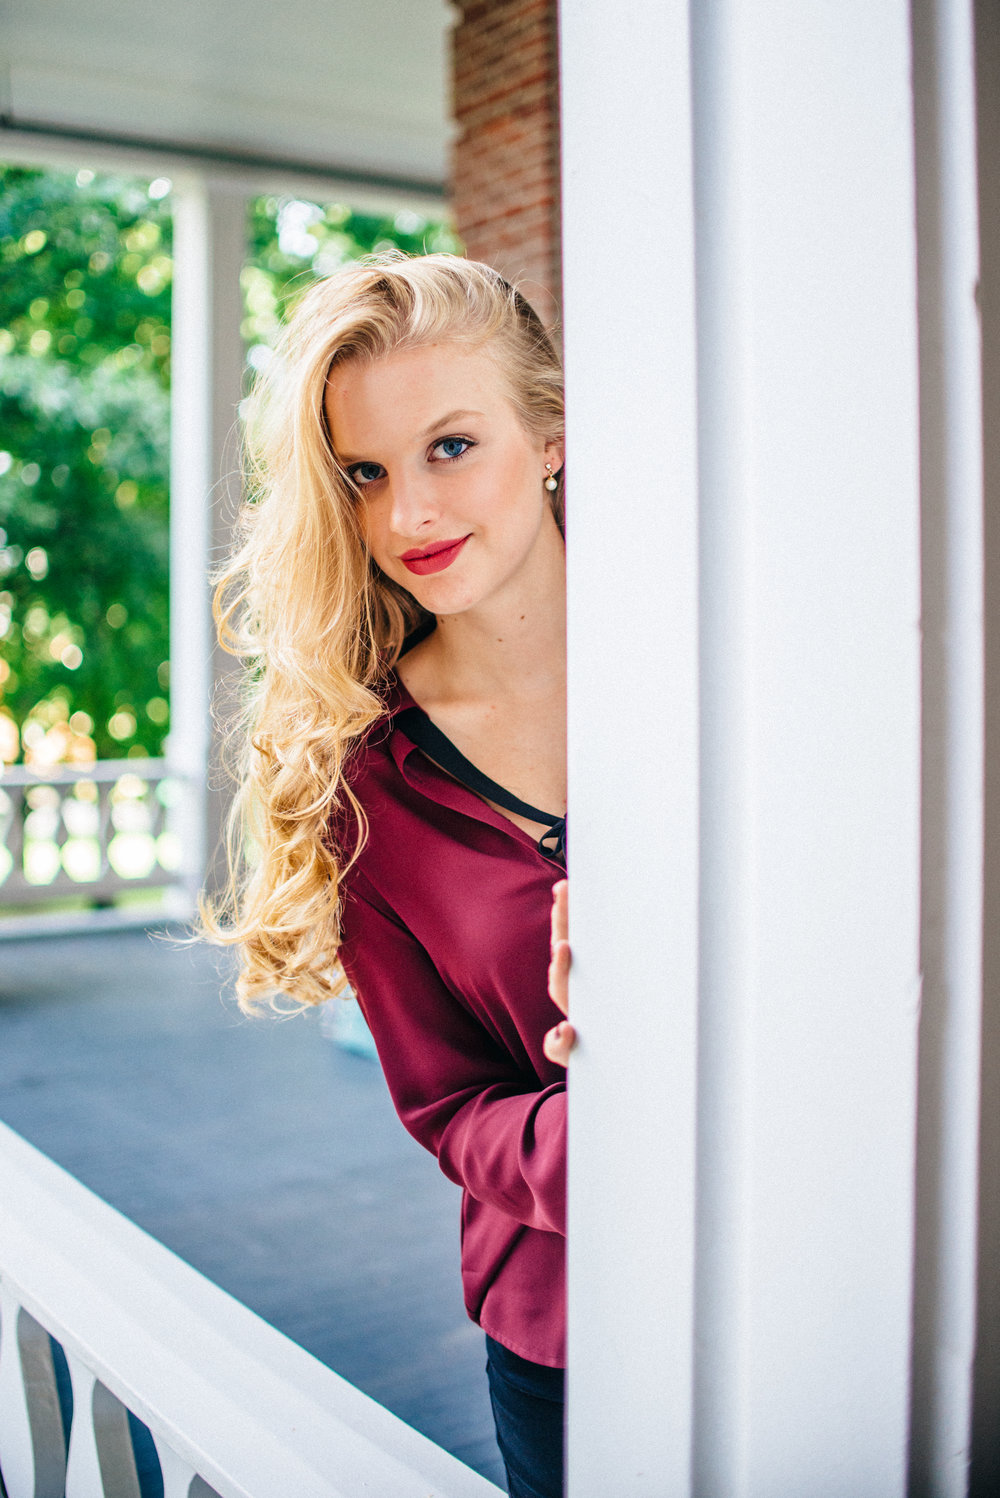 Blonde senior model with long curly hair flipped to one side